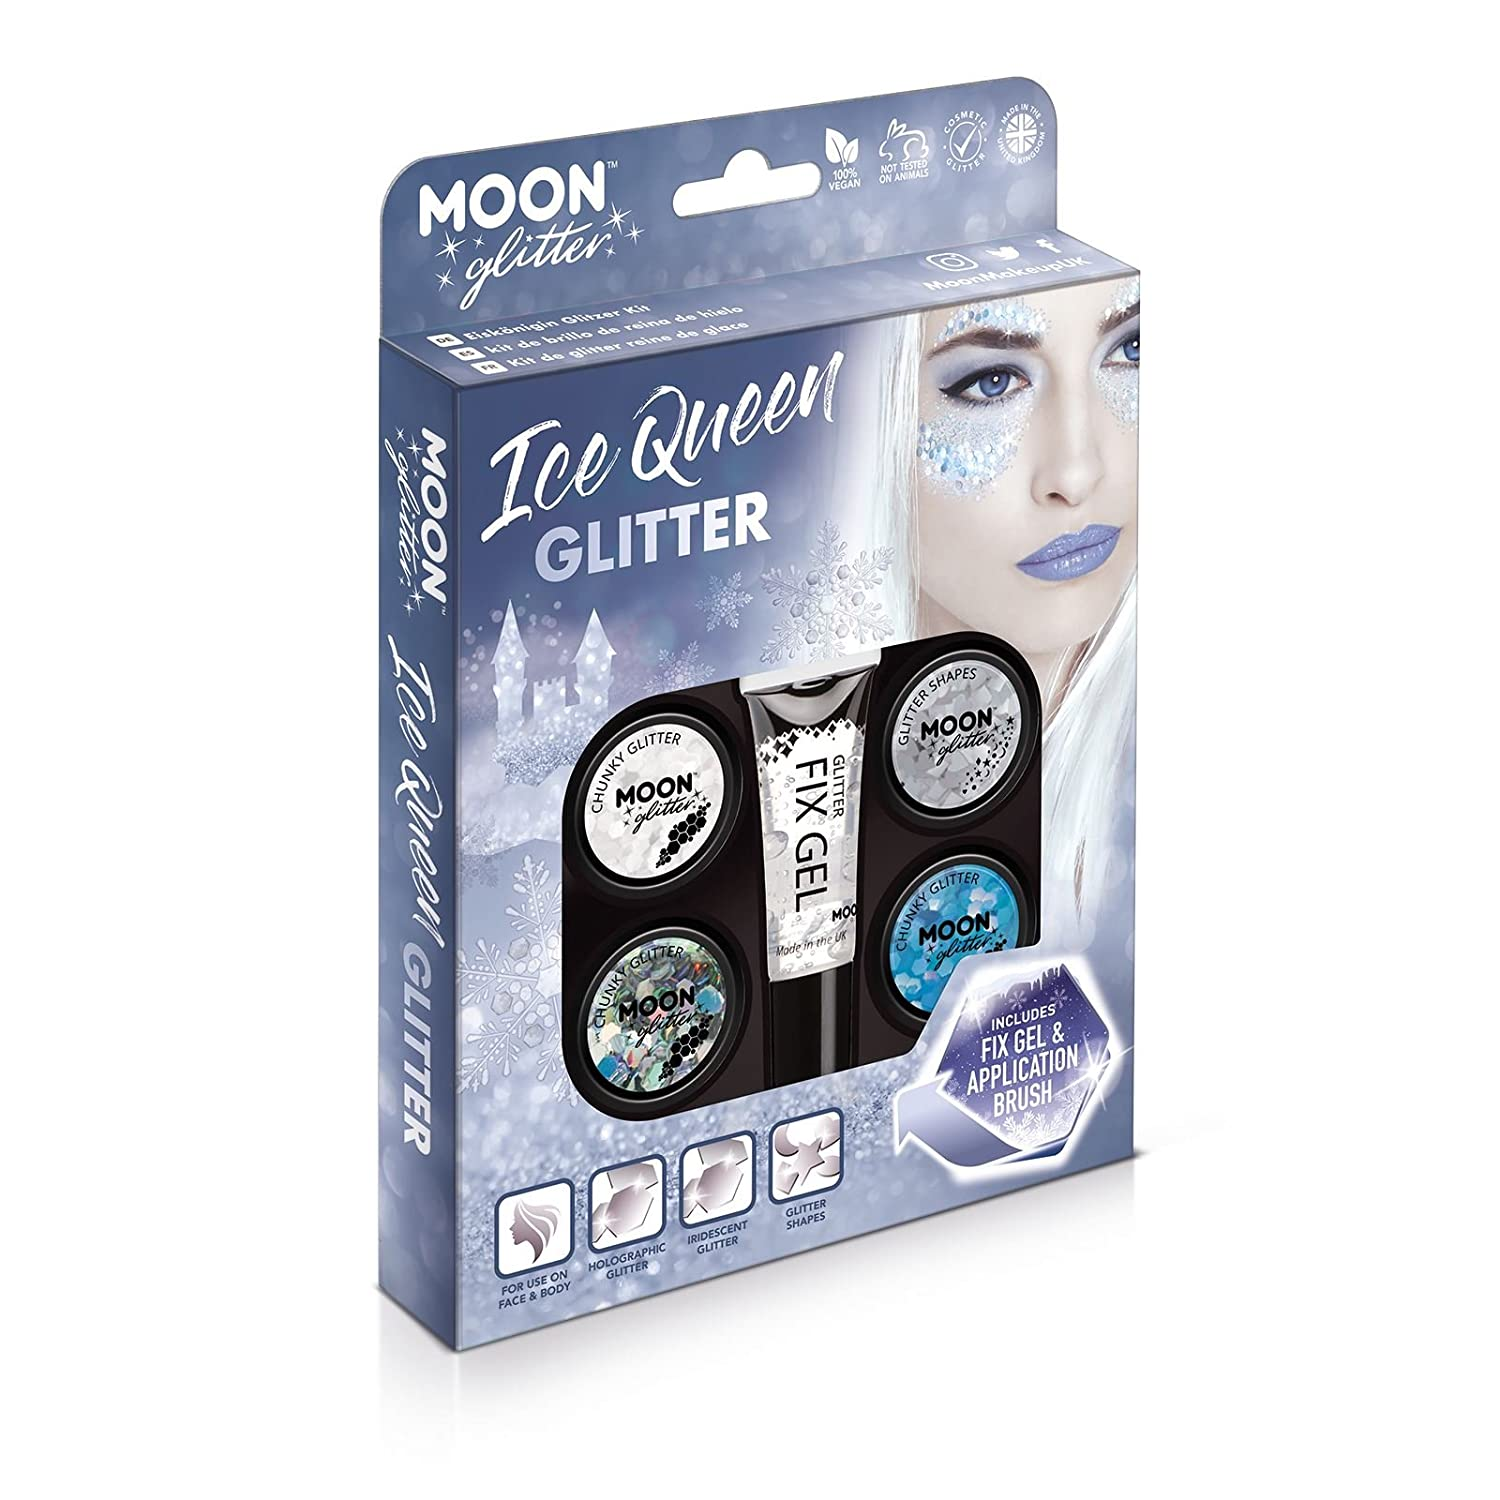 Ice Queen Glitter Kit by Moon Glitter - 100% Cosmetic Glitter for Face, Body, Nails, Hair and Lips